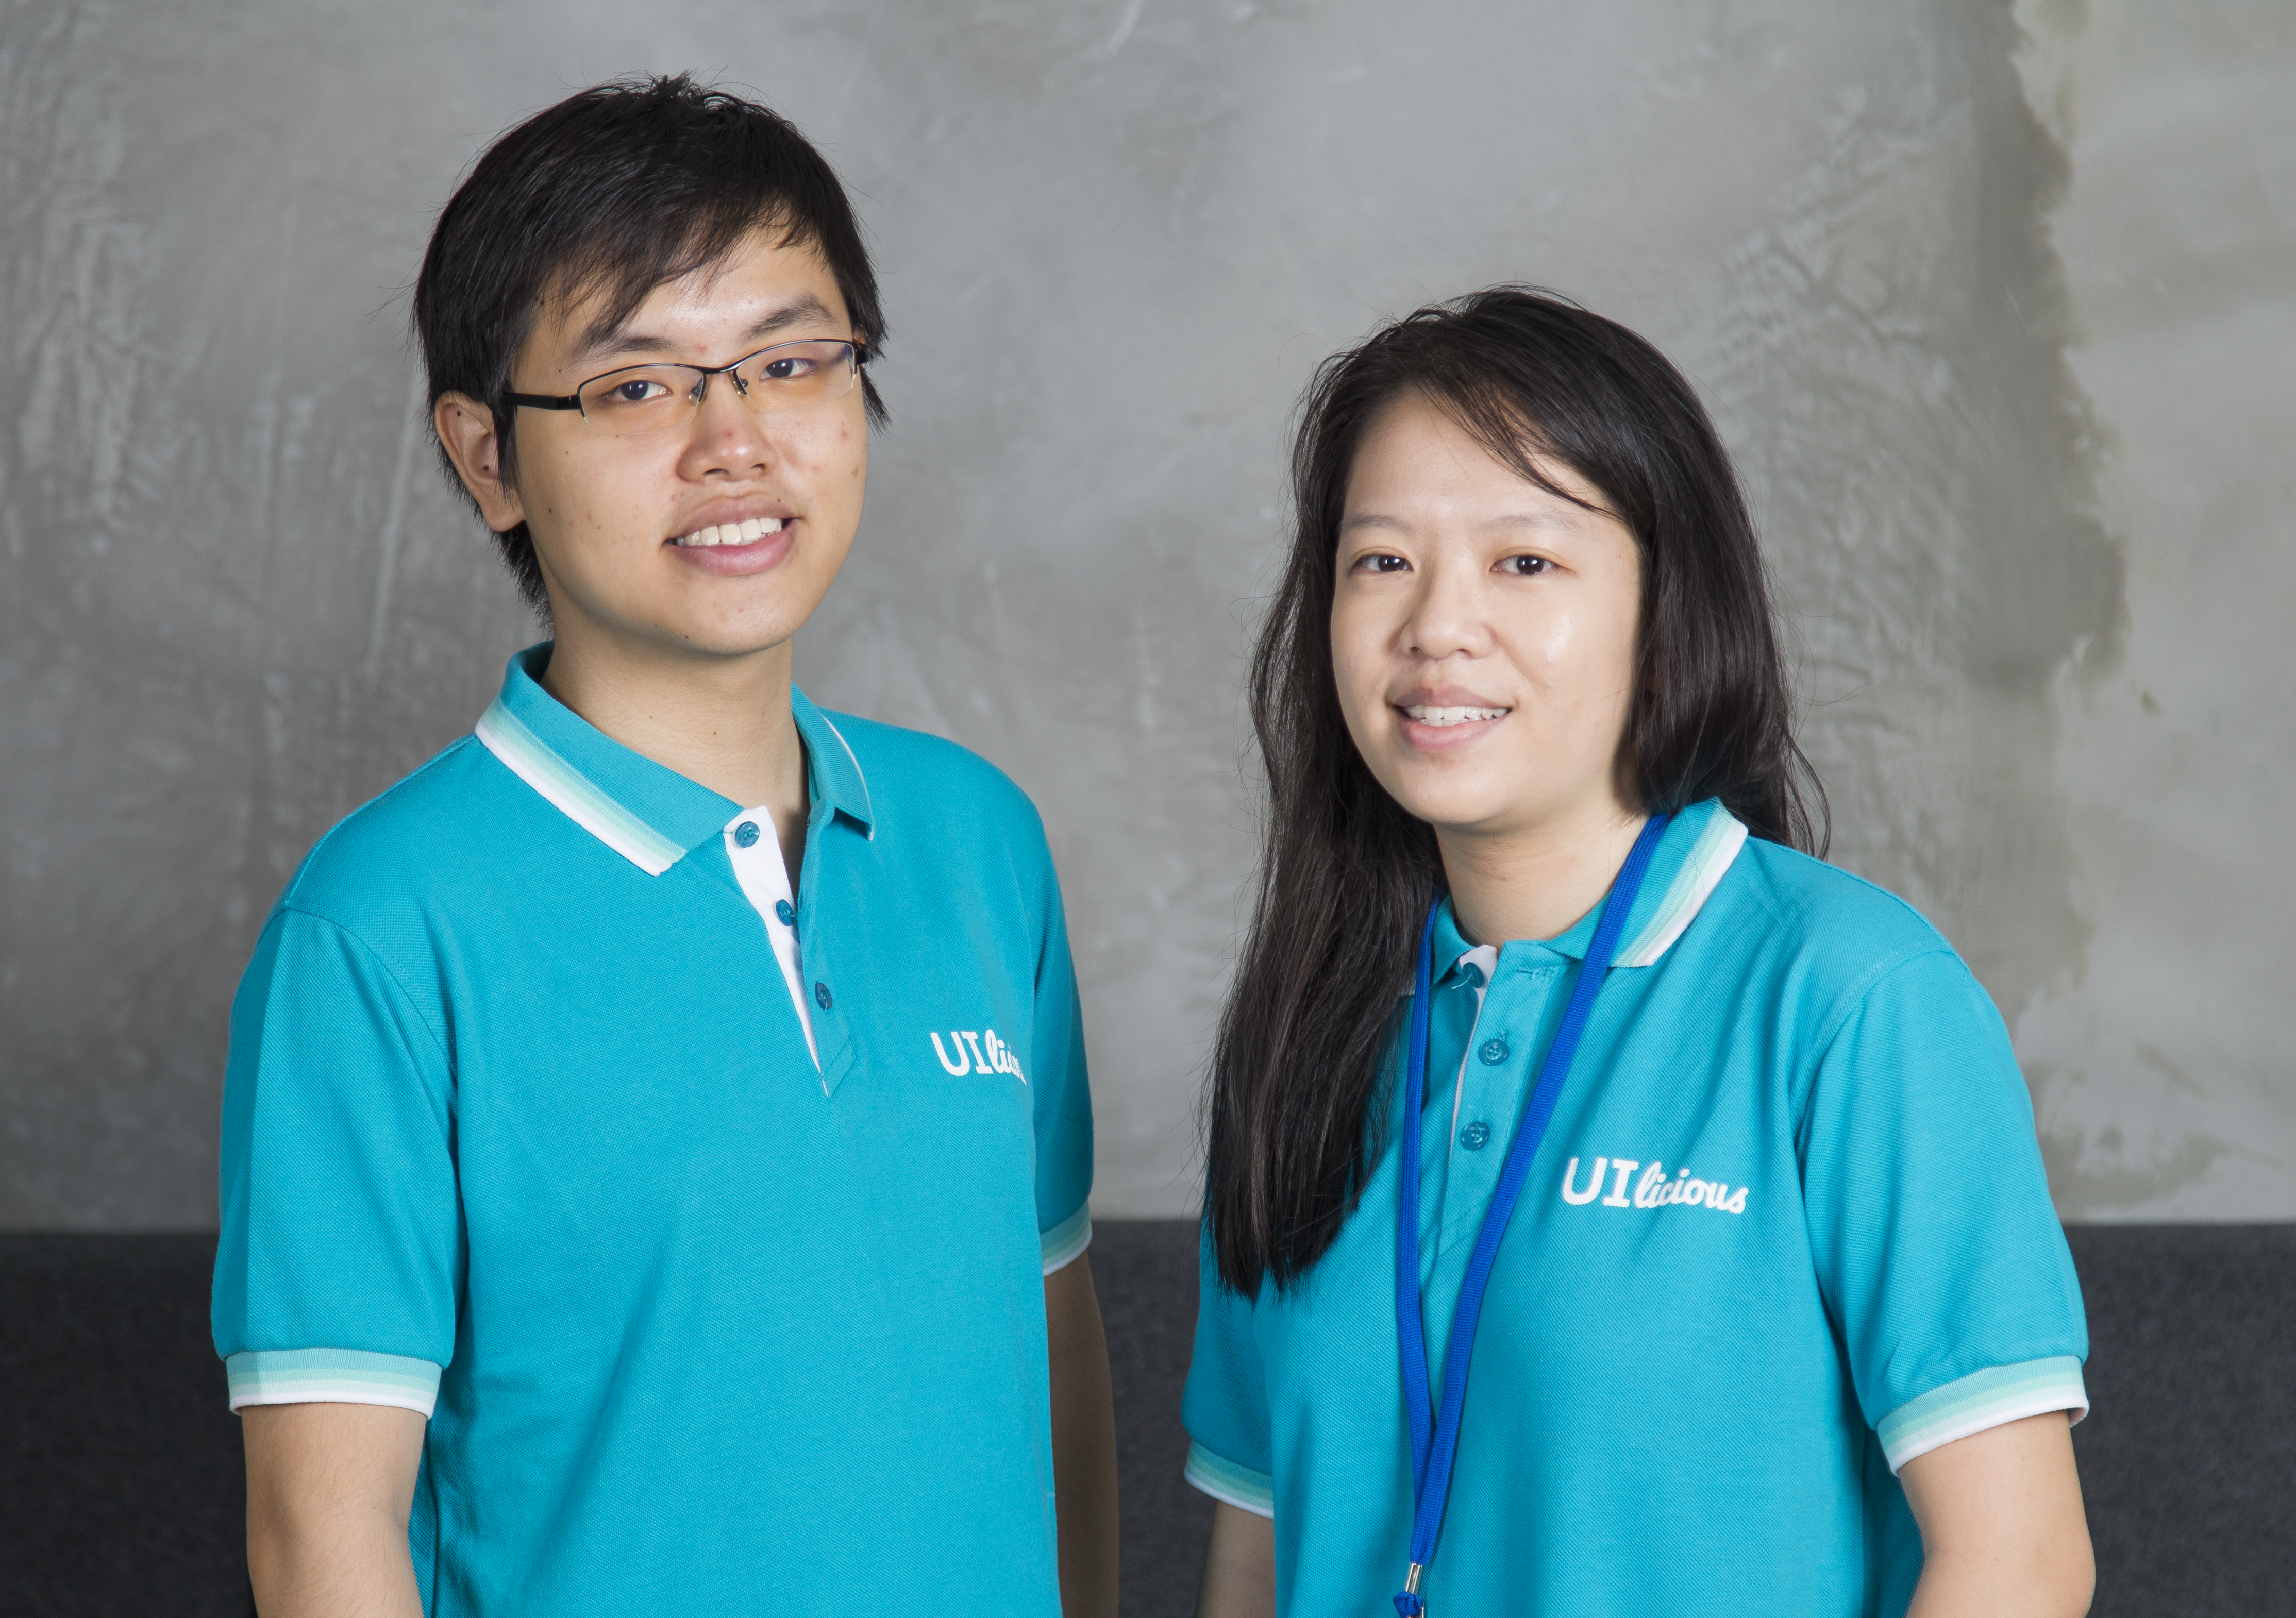 UI-licious' co-founders, chief technology police officer Eugene Cheah (left) coupled with chief executive officer Shi Ling Tai (right)